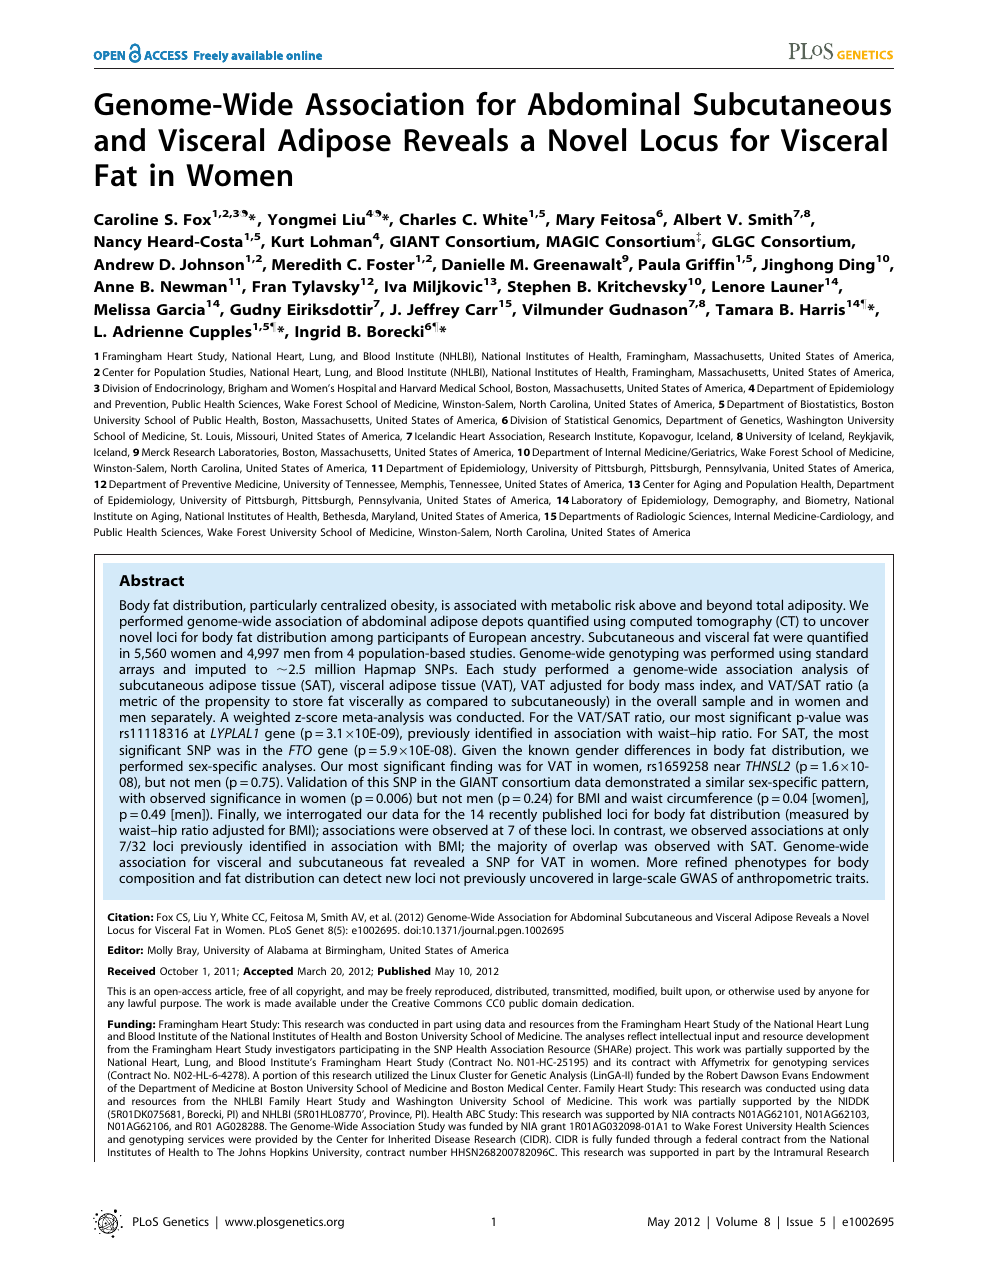 Genome-Wide Association for Abdominal Subcutaneous and